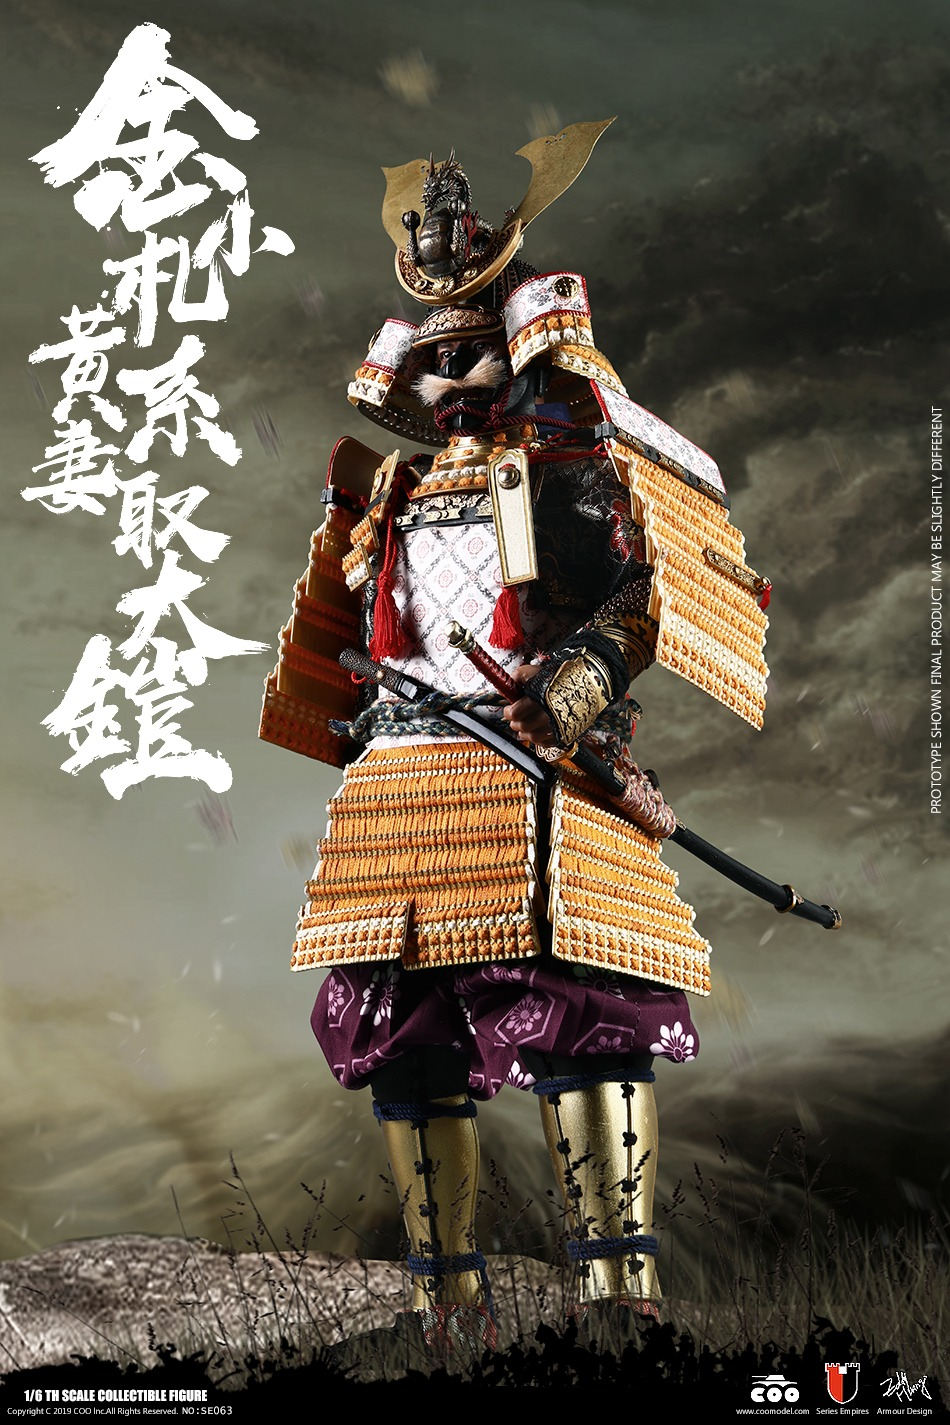 japanese - NEW PRODUCT: COOMODEL: 1/6 Empire Series Legendary Edition-Jin Xiaozha's Yellow Wife Takes Big Armor & 狮 Series Lion-shaped 锖 Iron Hit 19073710